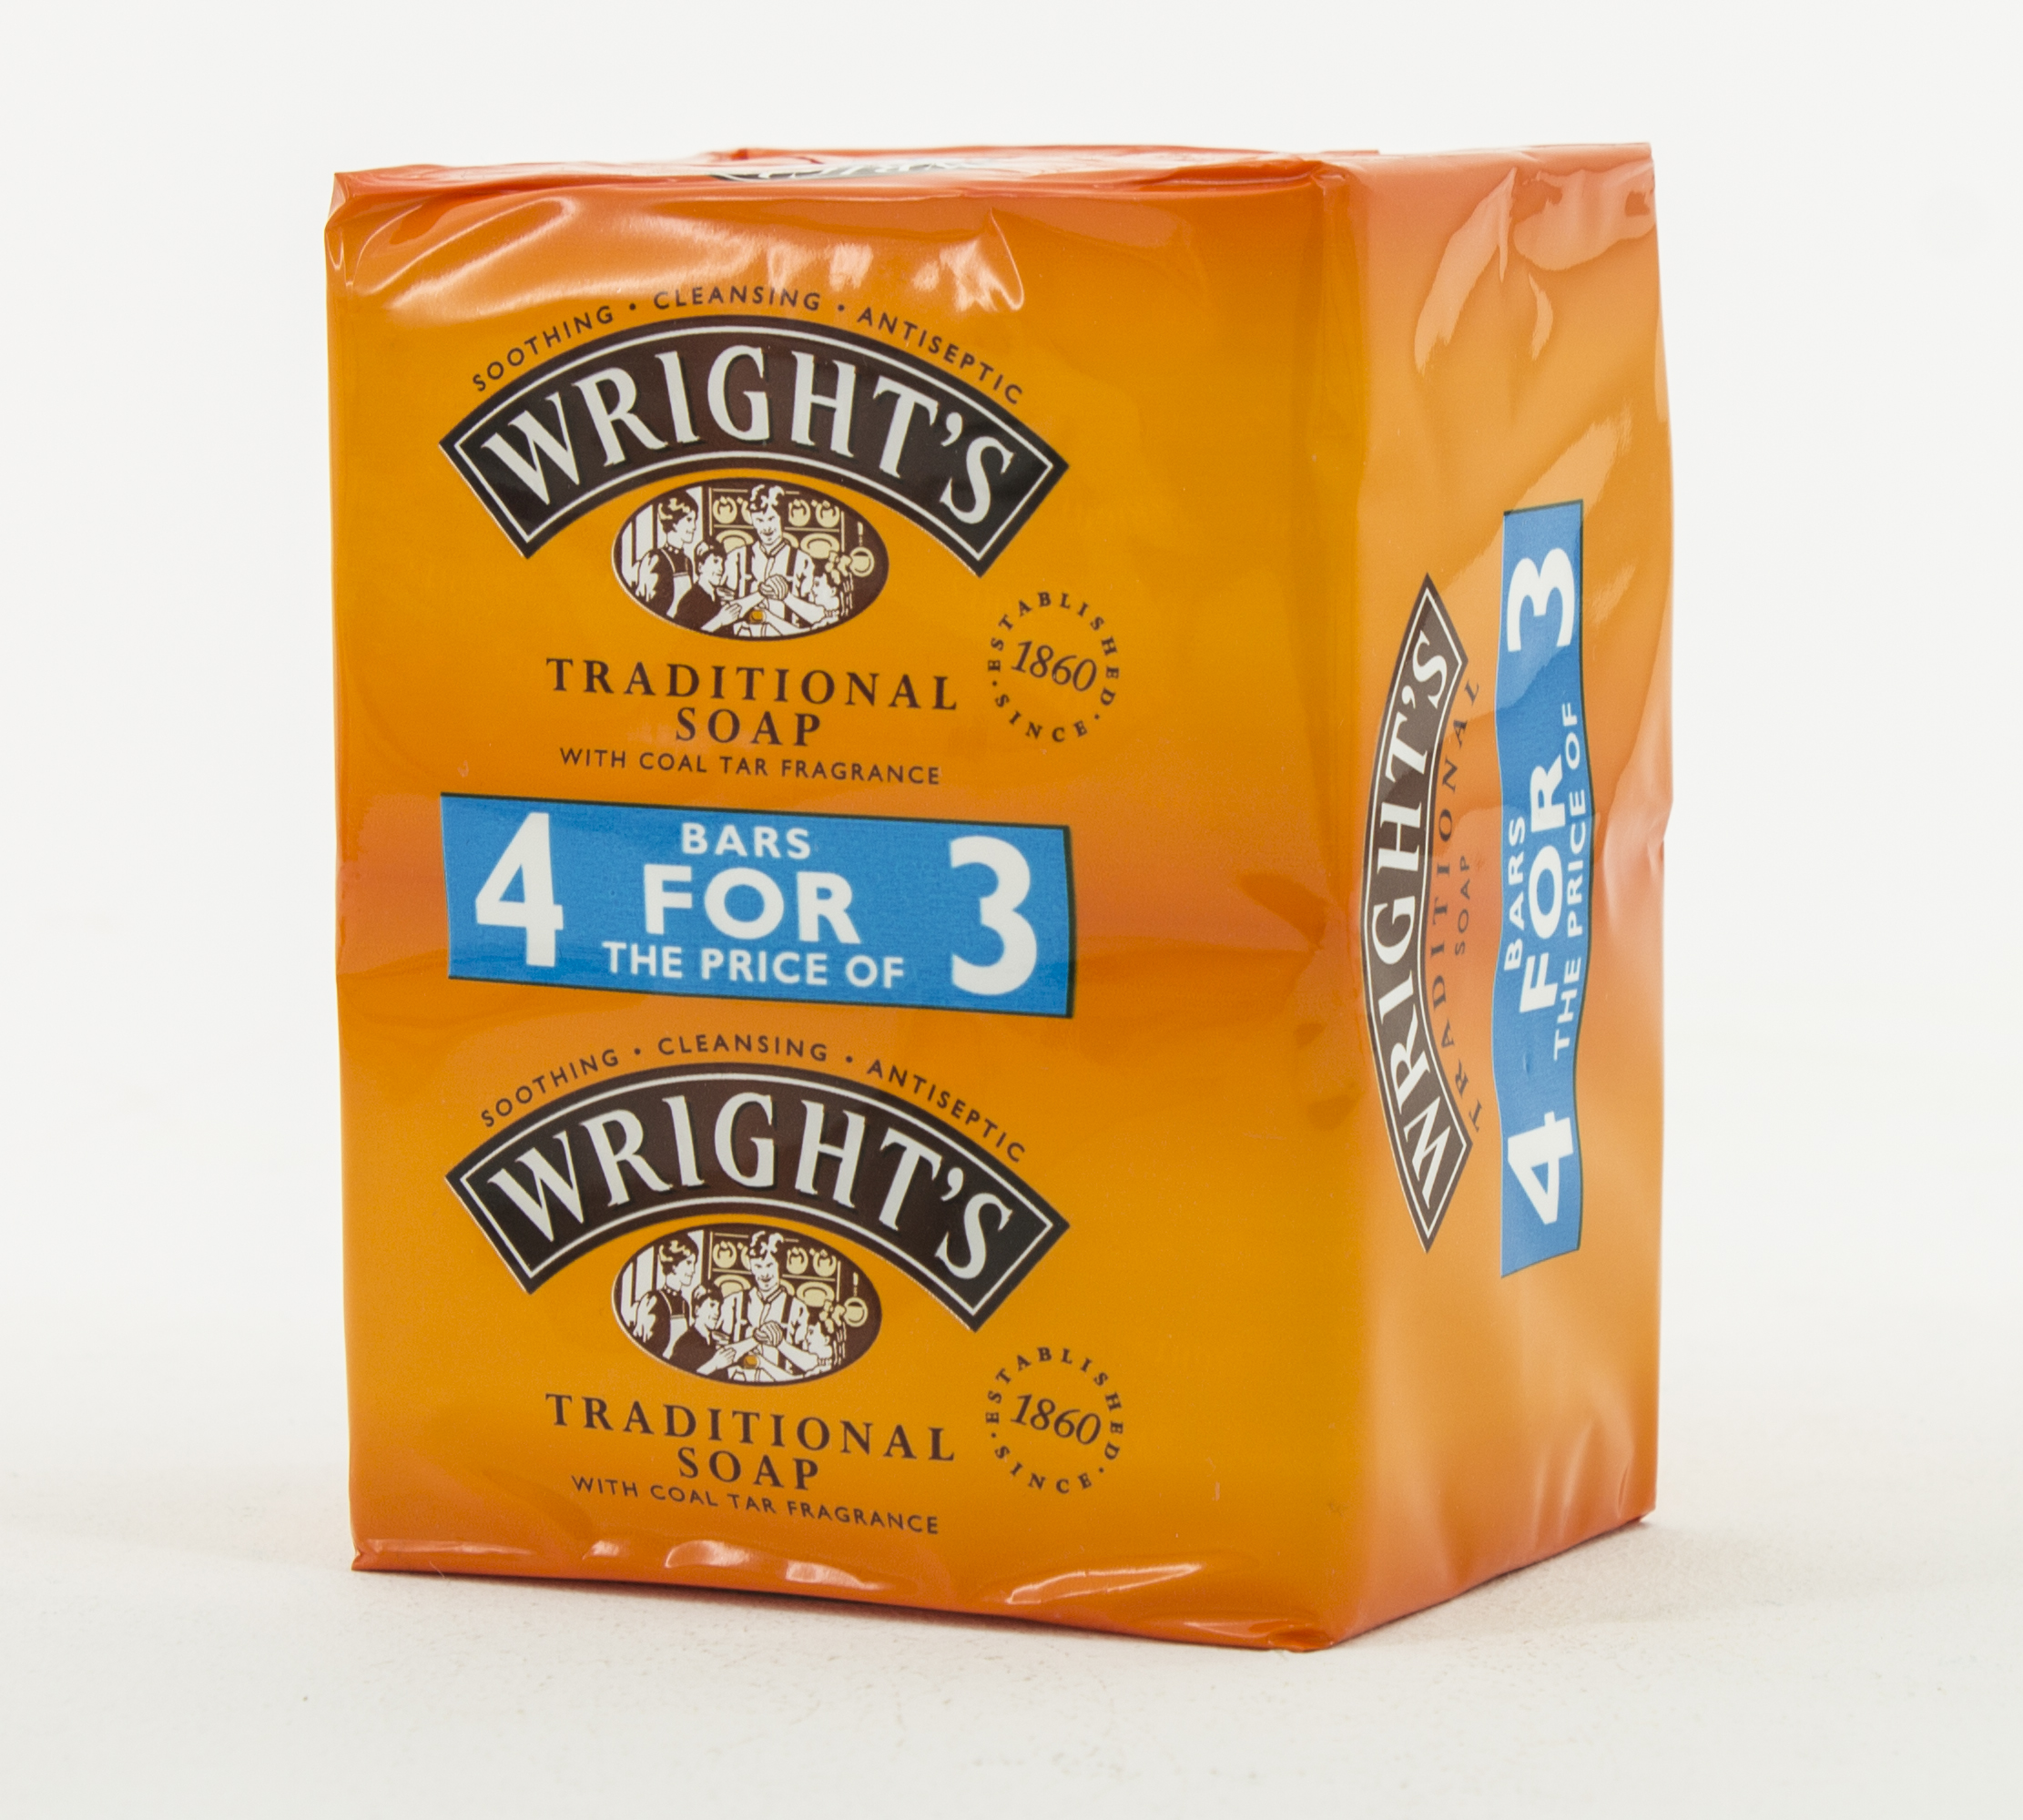 Wrights Traditional Coal Tar Soap - Pack of 24 thumbnail image 1